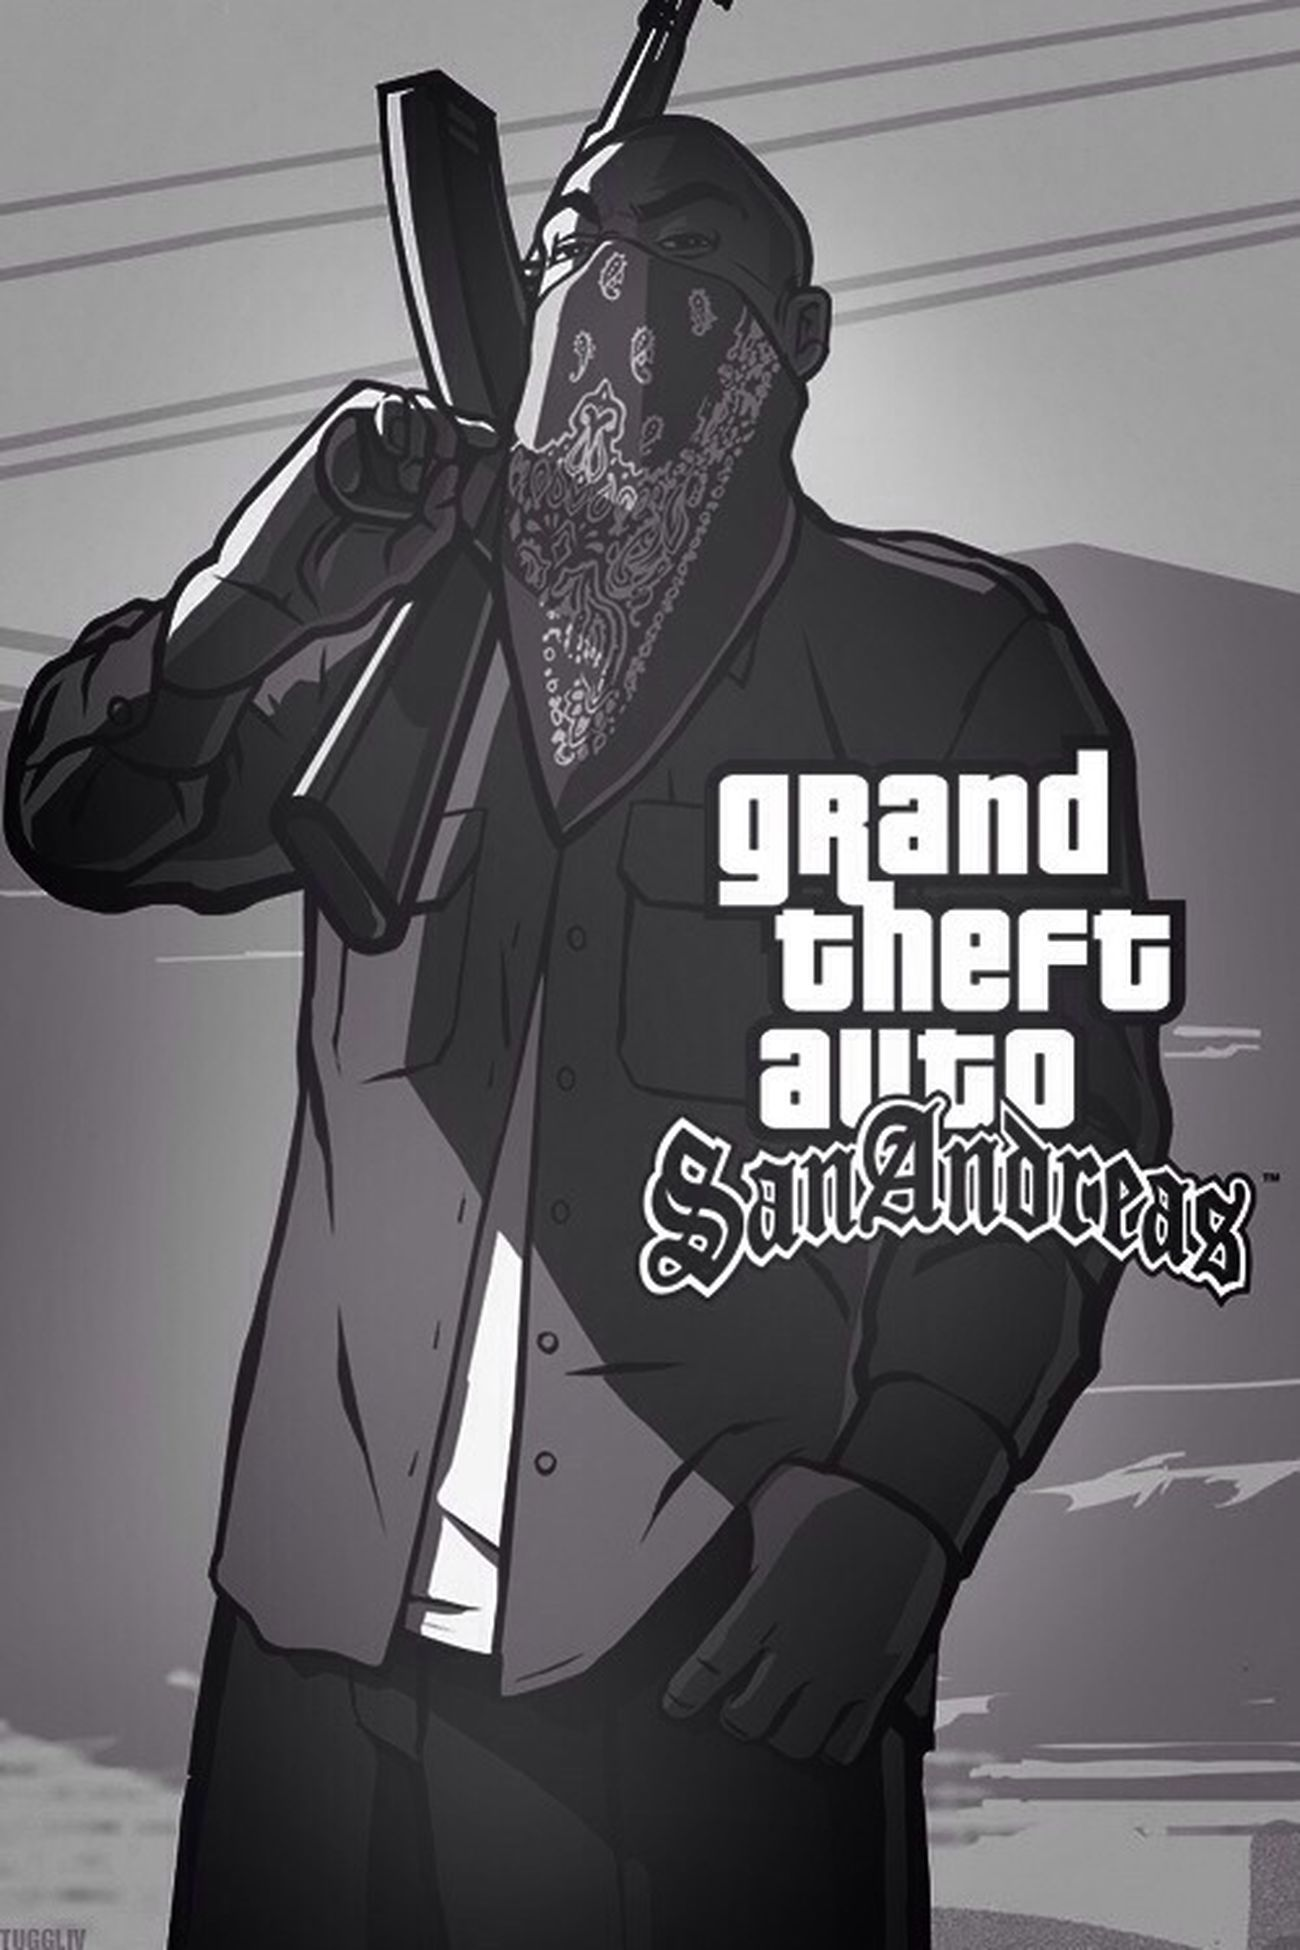 favourite game ever GTA Gtasanandreas